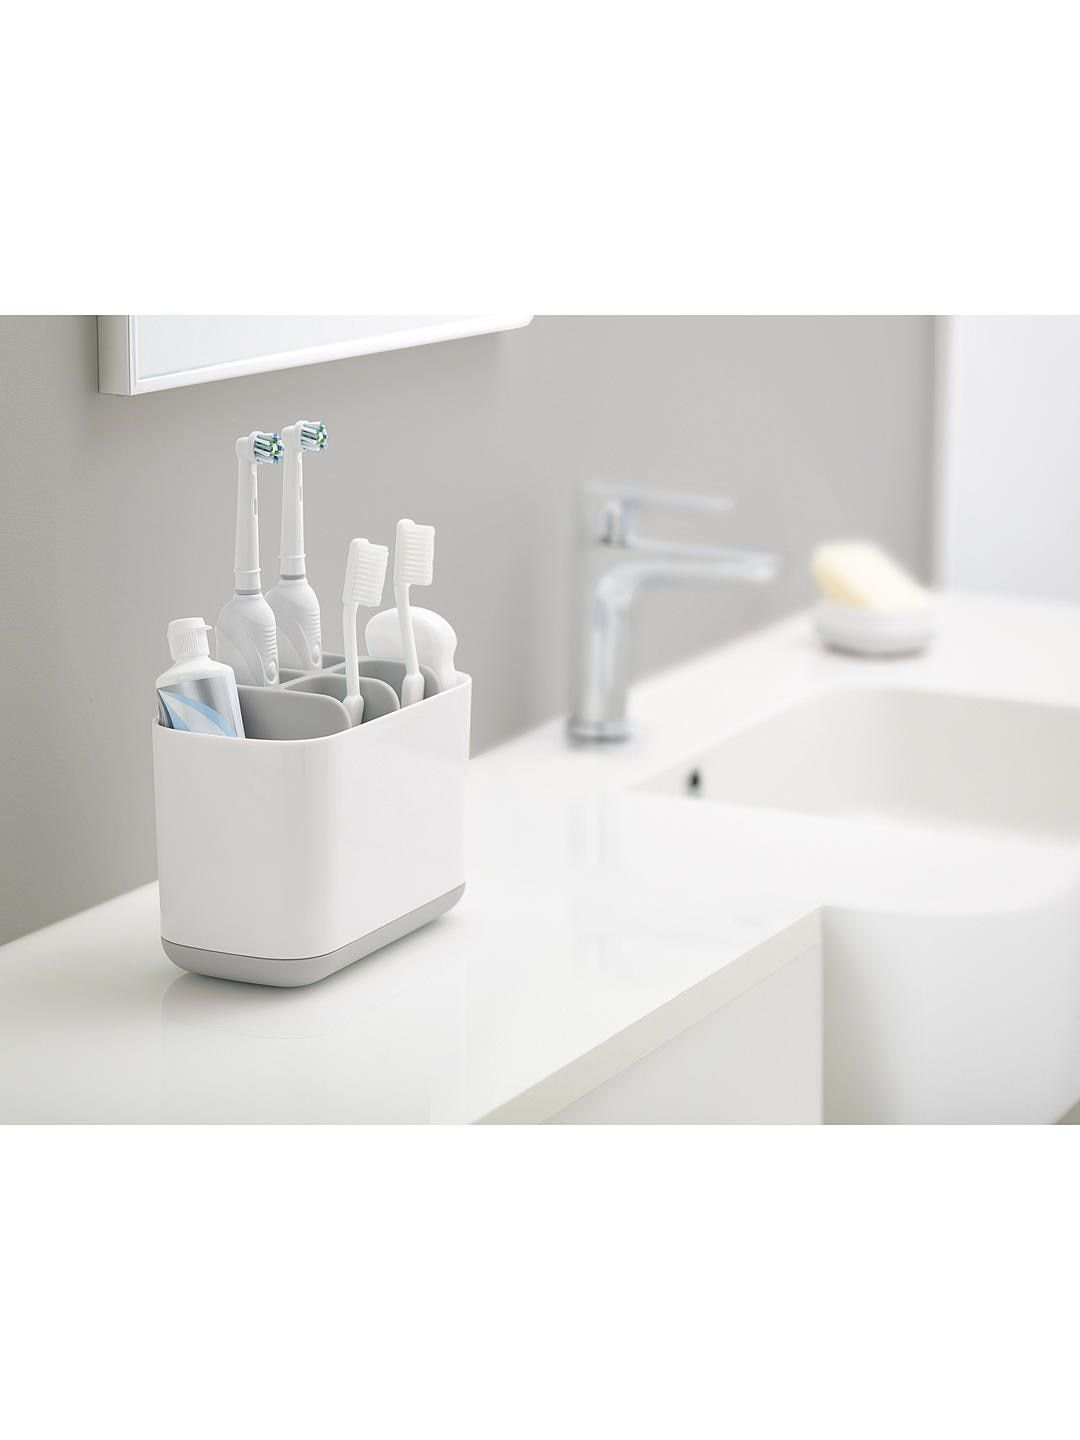 Joseph Joseph Easystore Toothbrush Caddy Large Grey Brushing Teeth Bathroom Accessories Amazing Bathrooms